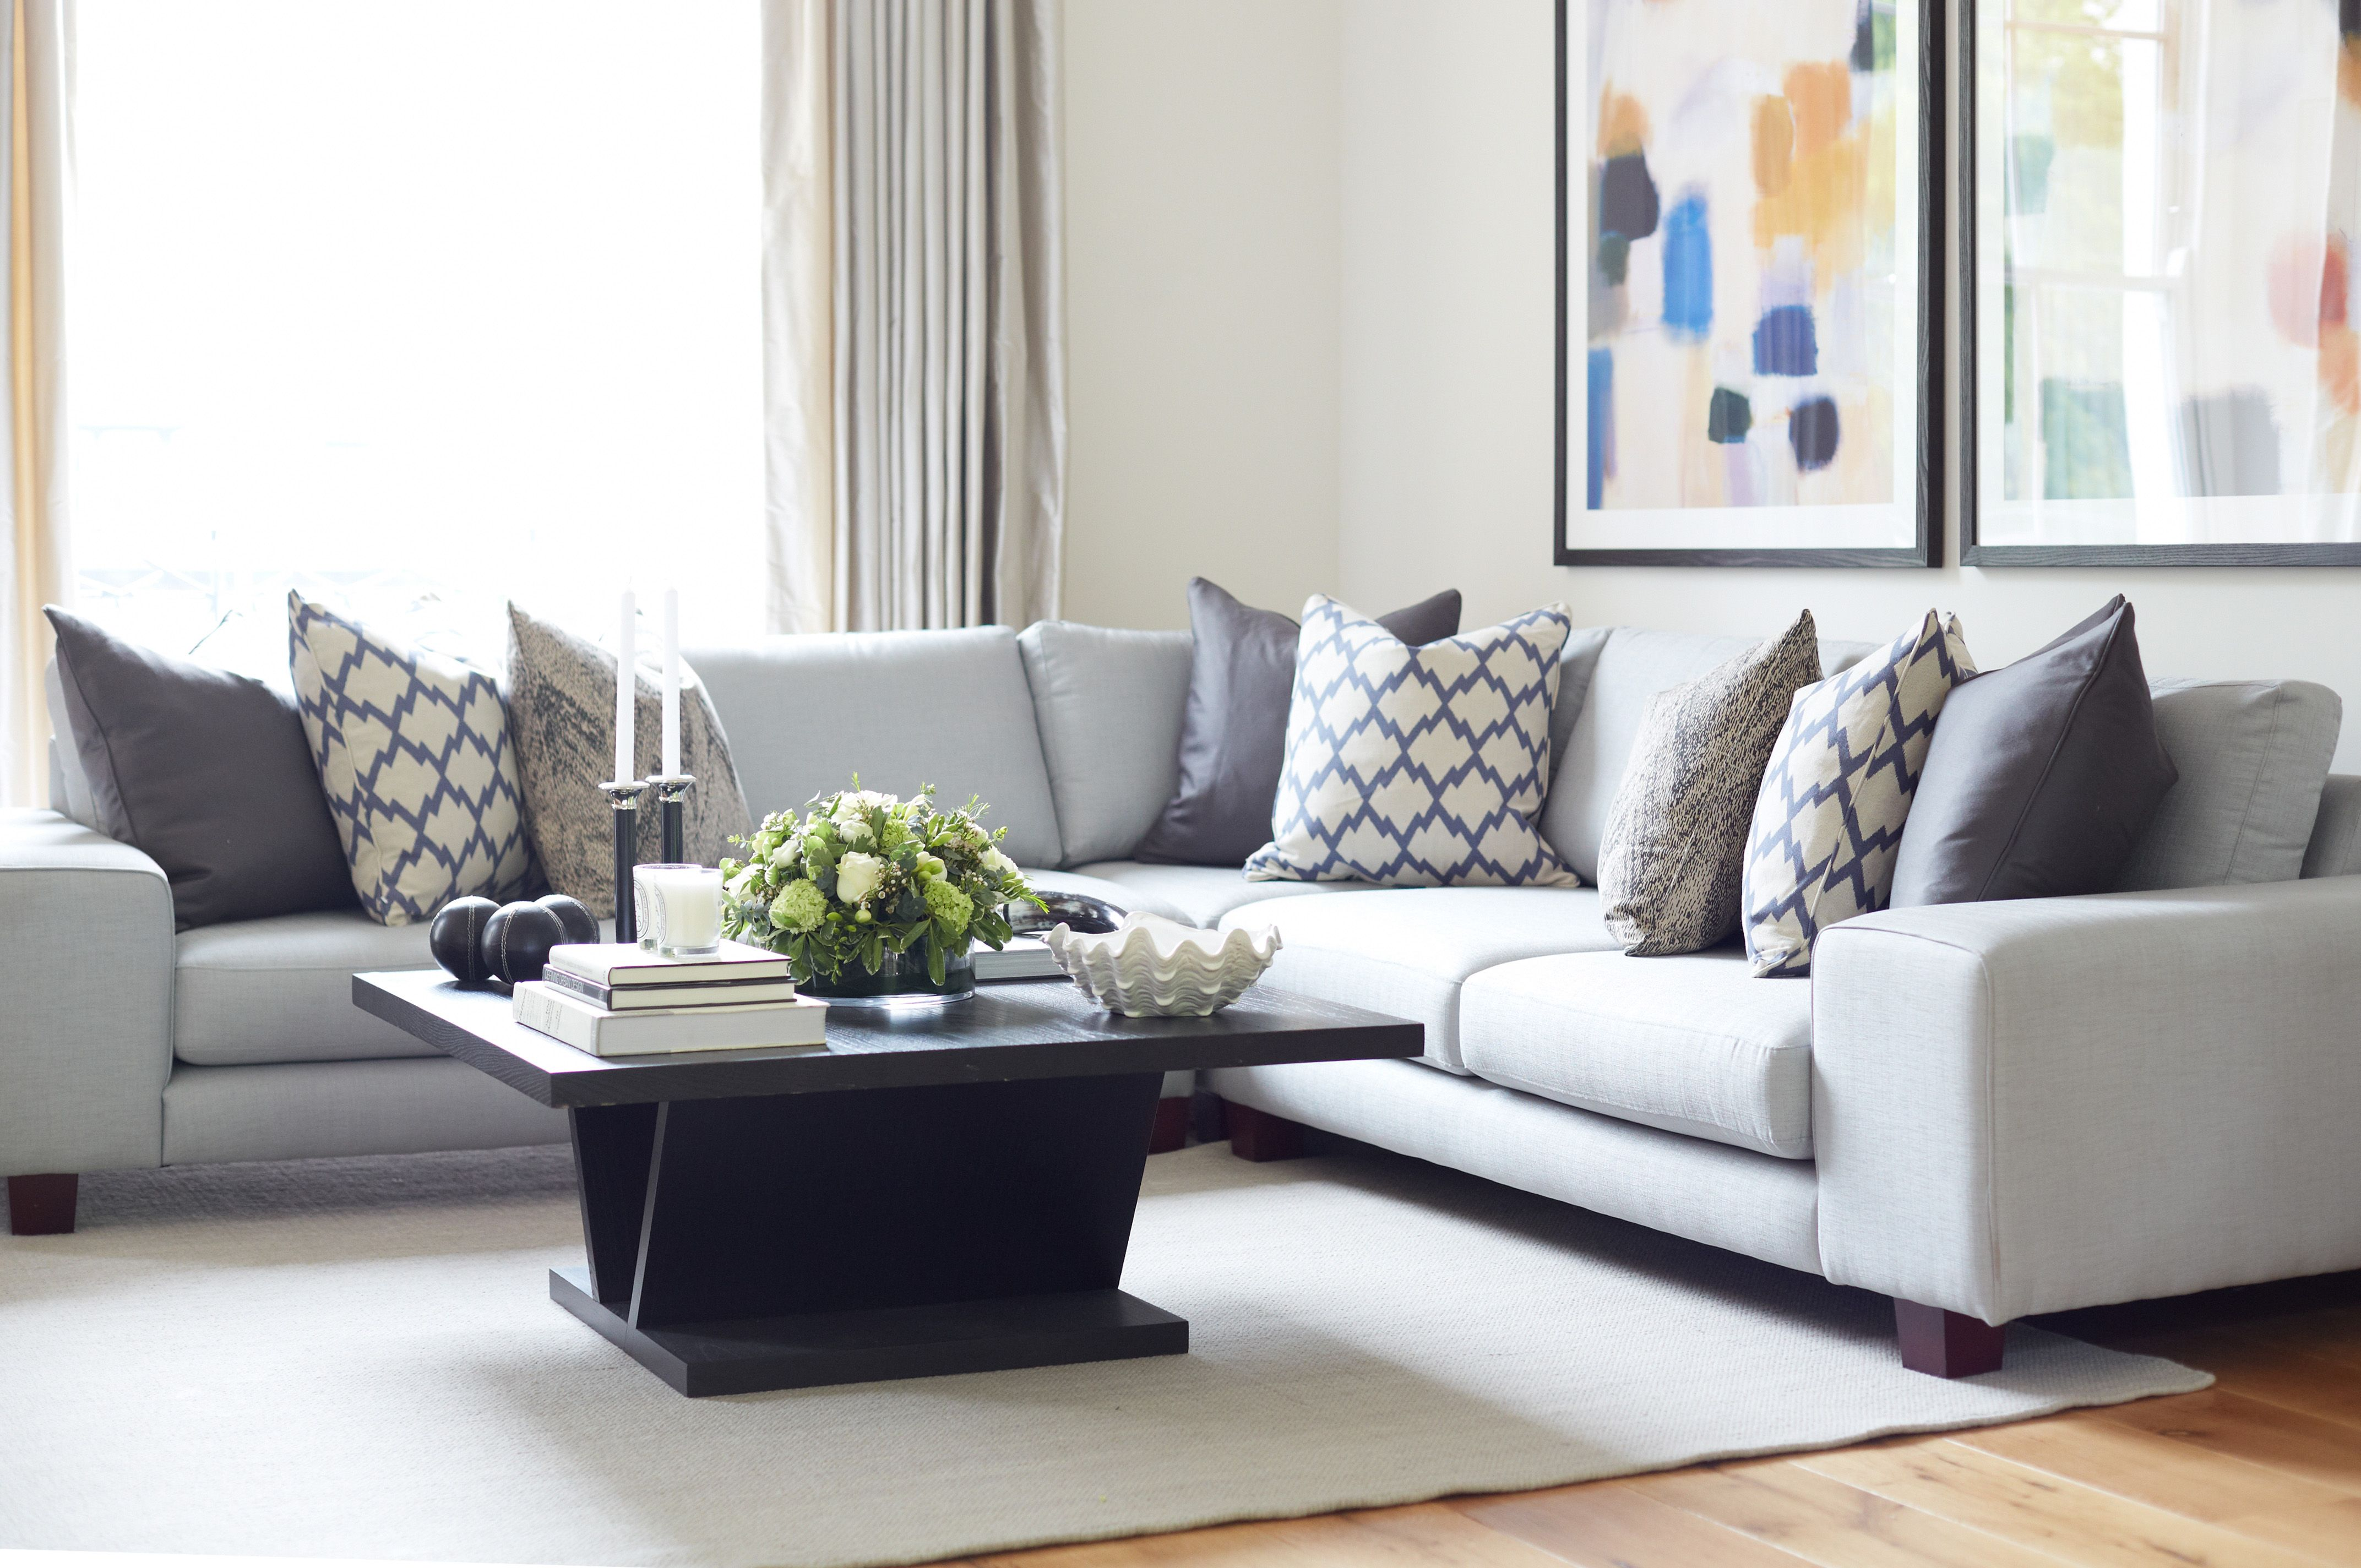 We Used This Light Grey Corner Sofa To Create A Relaxed Feeling In The Reception Room Of This G Sofa Cushions Arrangement Corner Sofa Cushions Cushions On Sofa